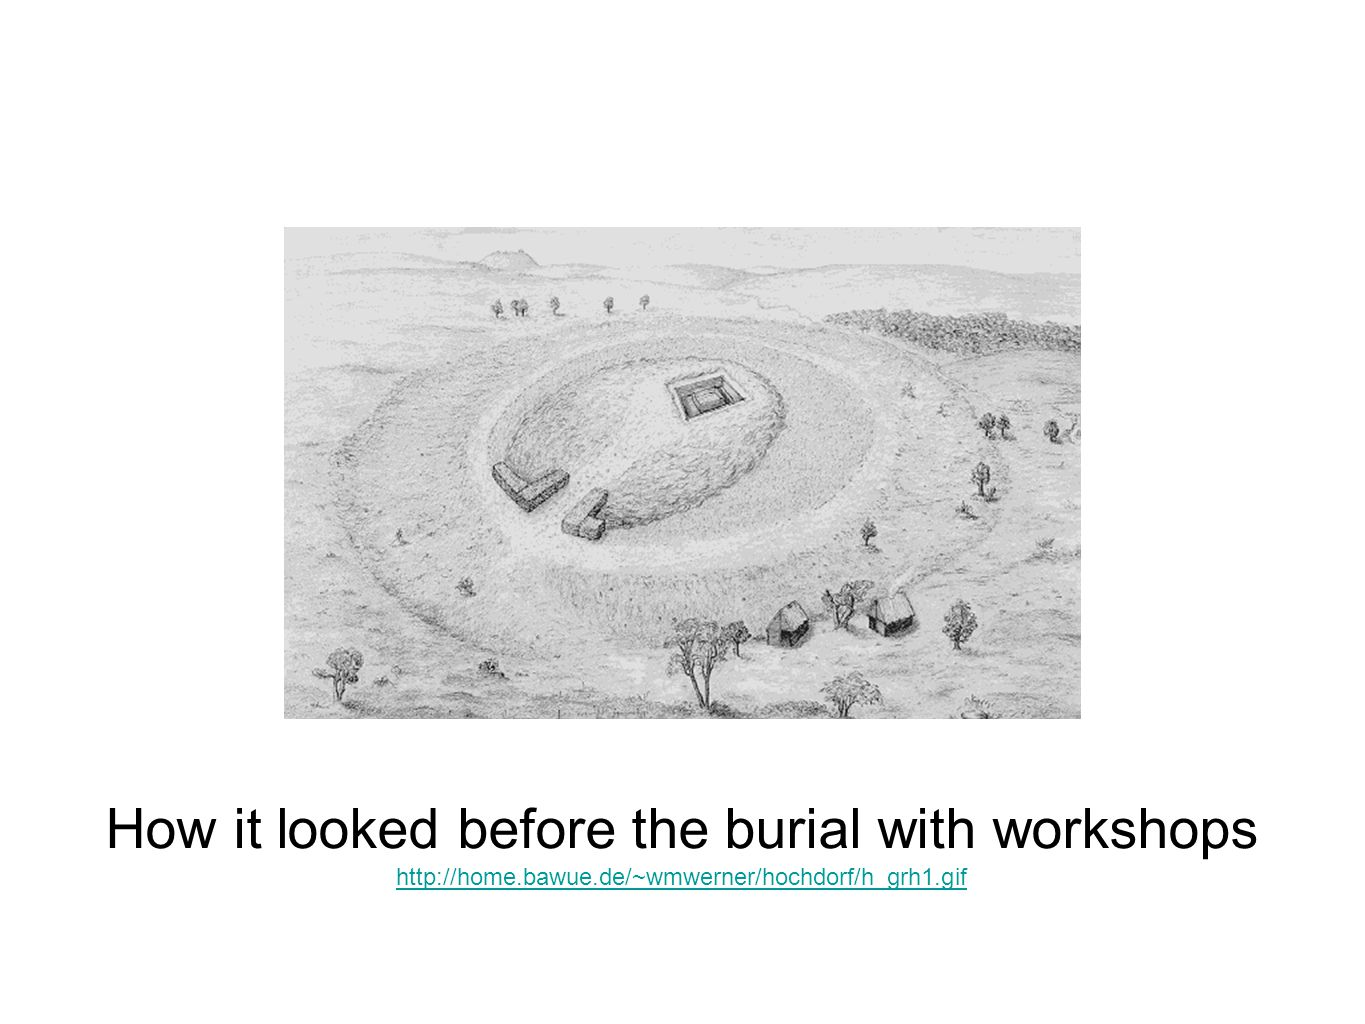 How it looked before the burial with workshops